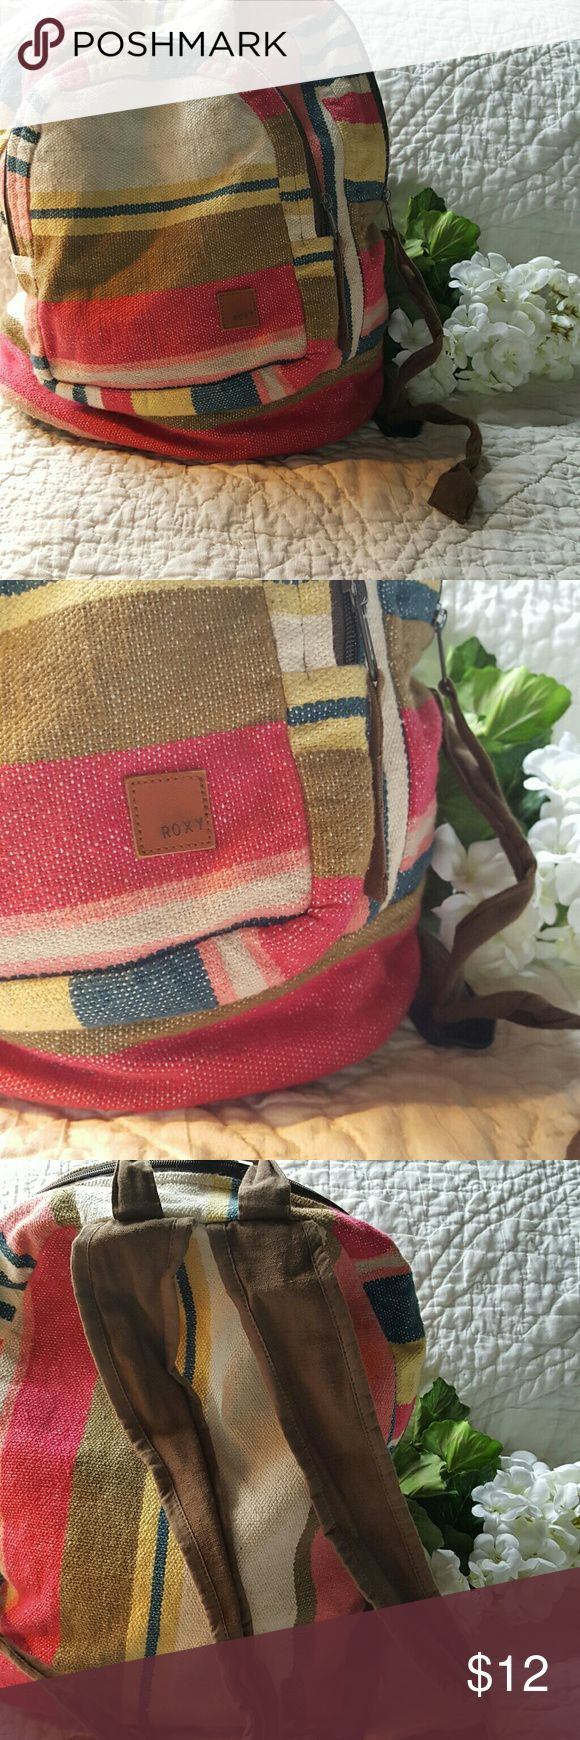 Roxy Backpack This striped backpack is in gently loved condition. Liner is intact, and zippers all work great. Small hole on bottom pictured. Roxy Bags Backpacks